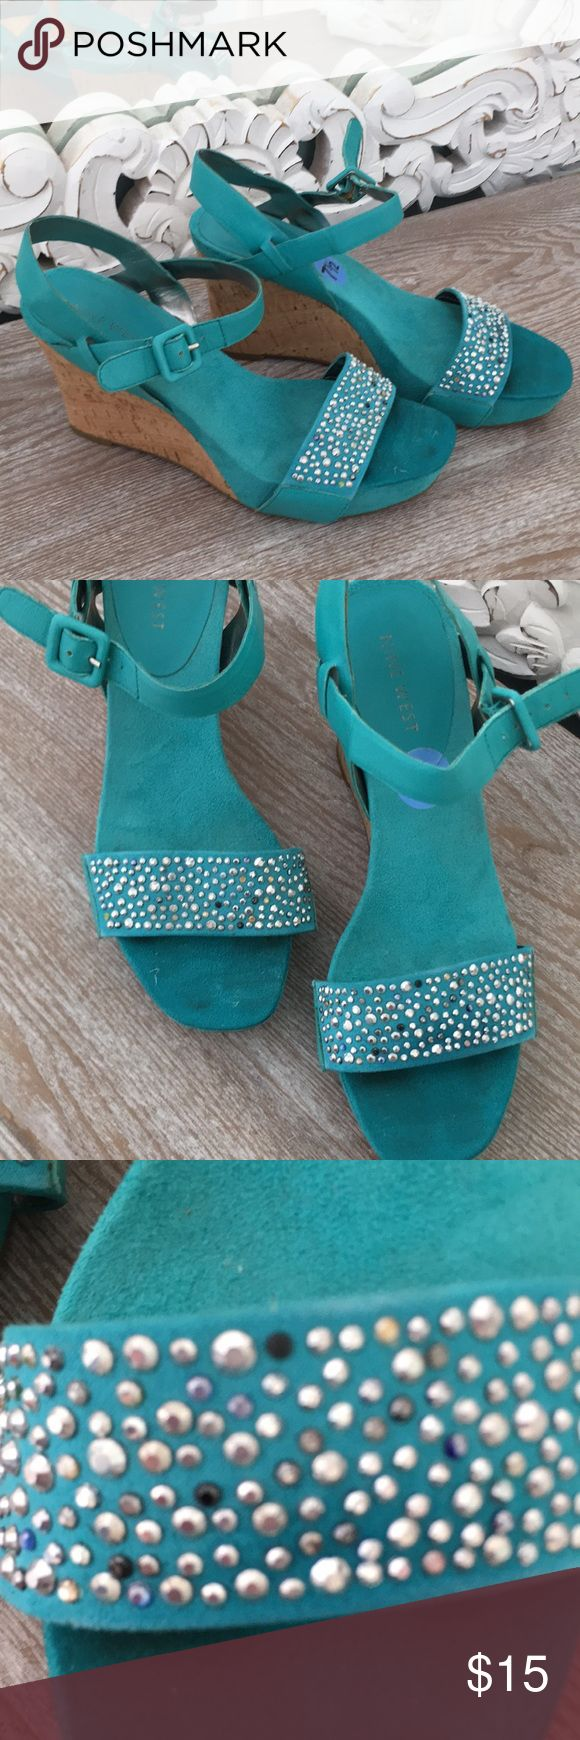 "Turquoise wedges Turquoise wedges with varies color studs,perfect for summer!! 3 1/4"" with platform Nine West Shoes Wedges"